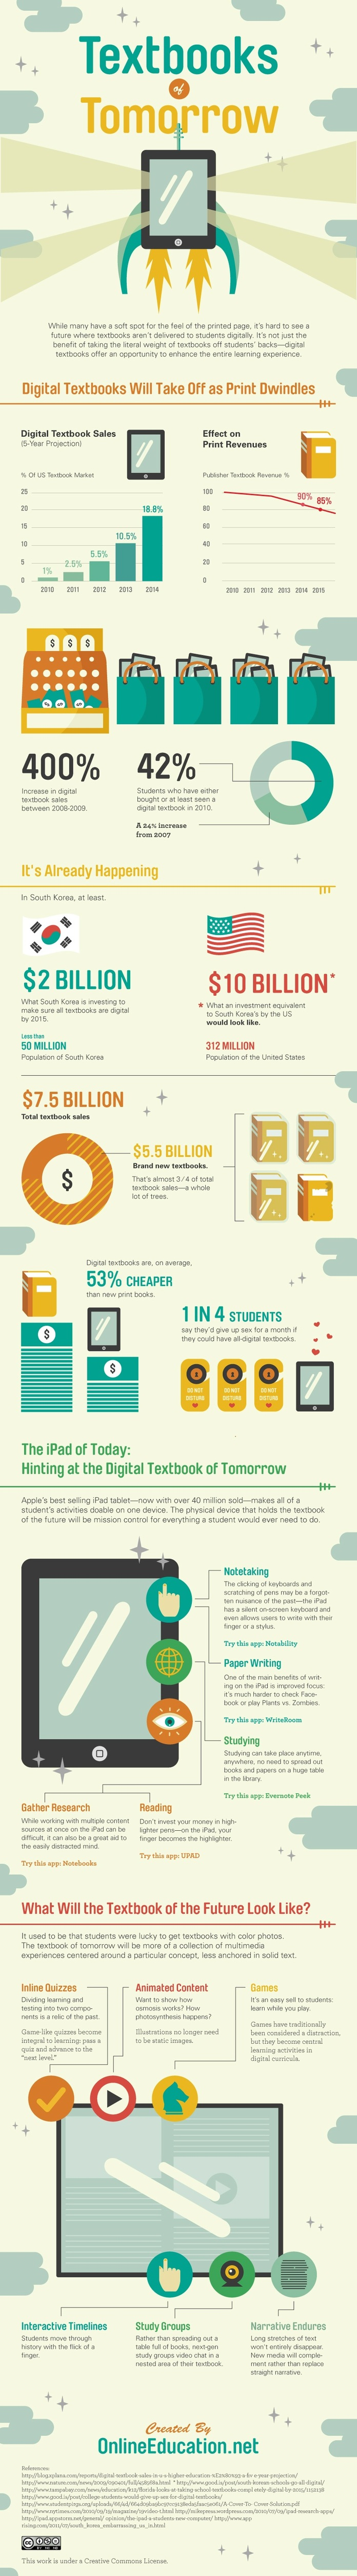 The Textbooks of Tomorrow [Infographic] | Geekosystem